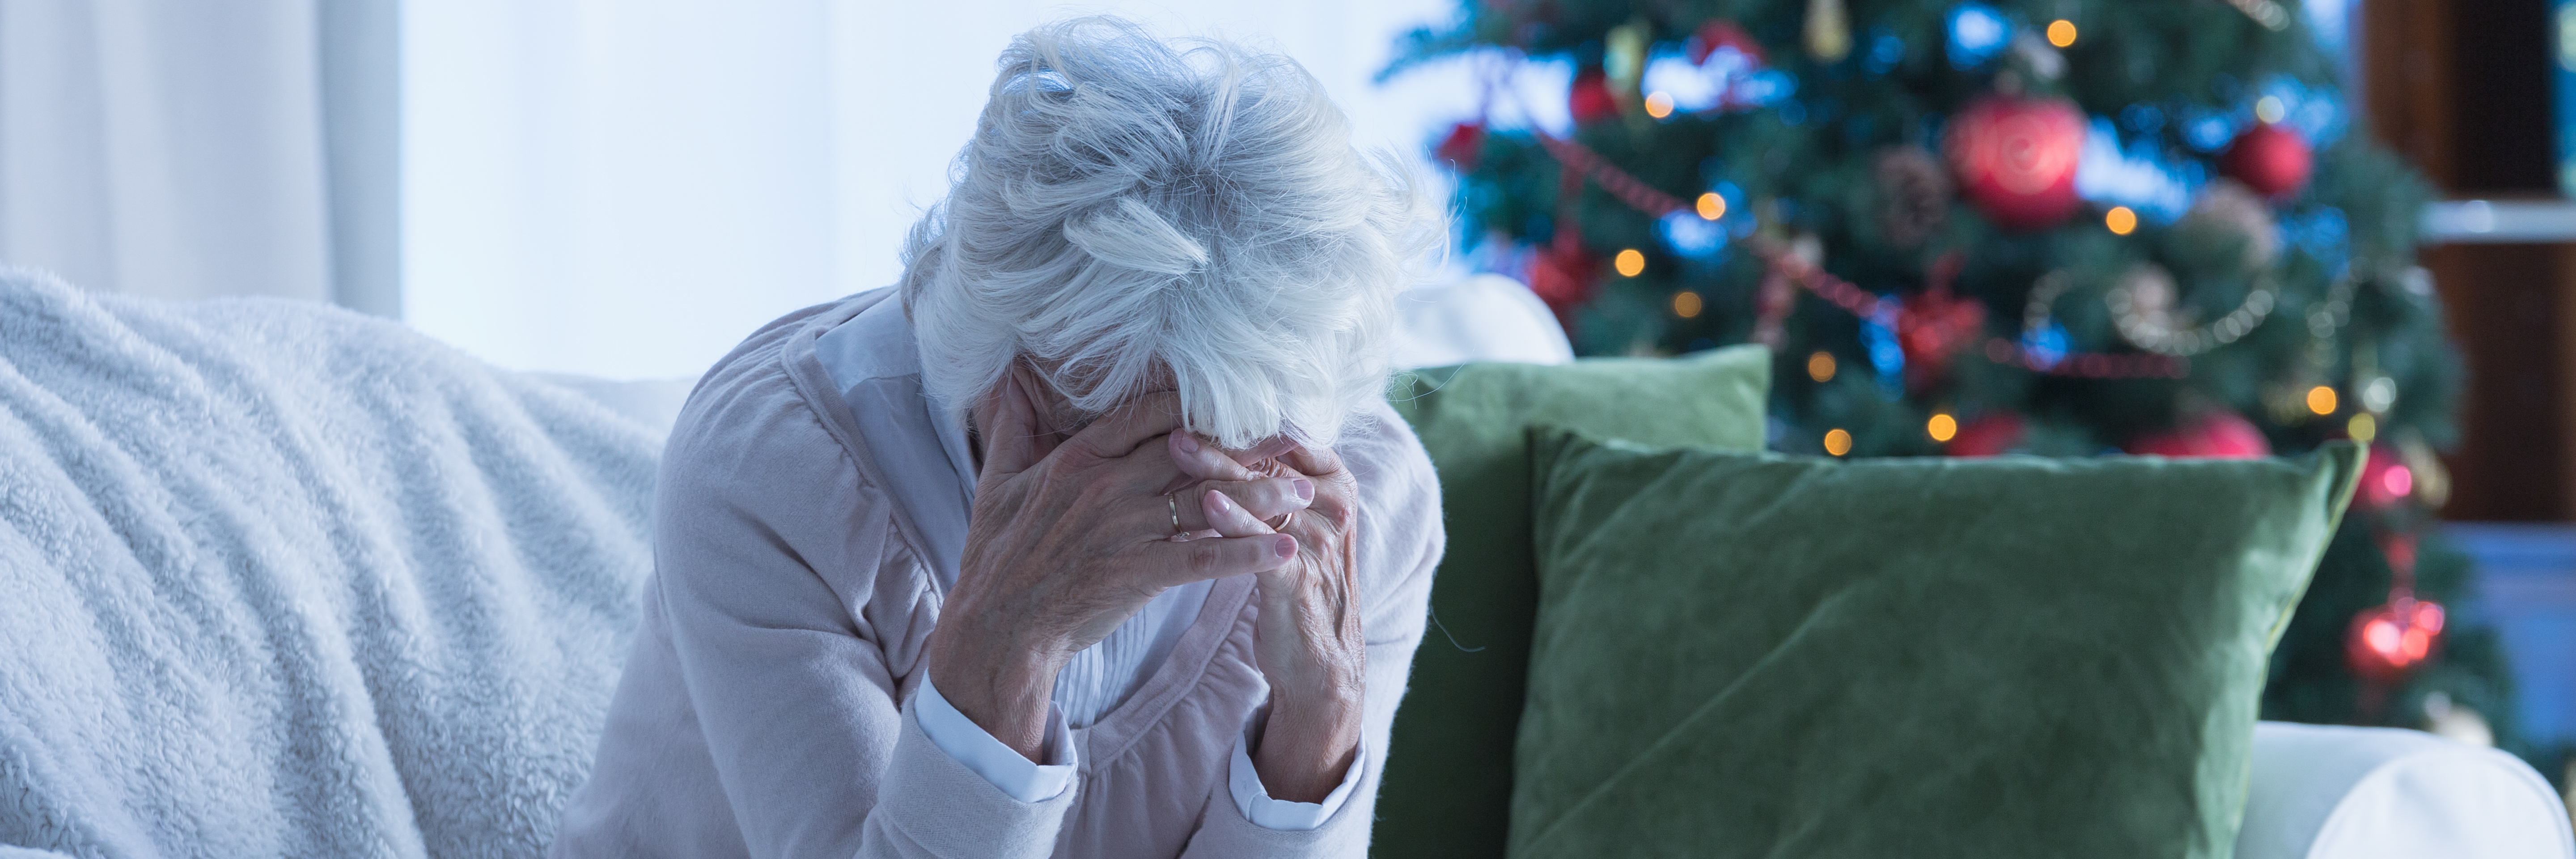 Divorced or Separated (or maybe just lonely)? Take These Four Truths Into Your Holiday Season